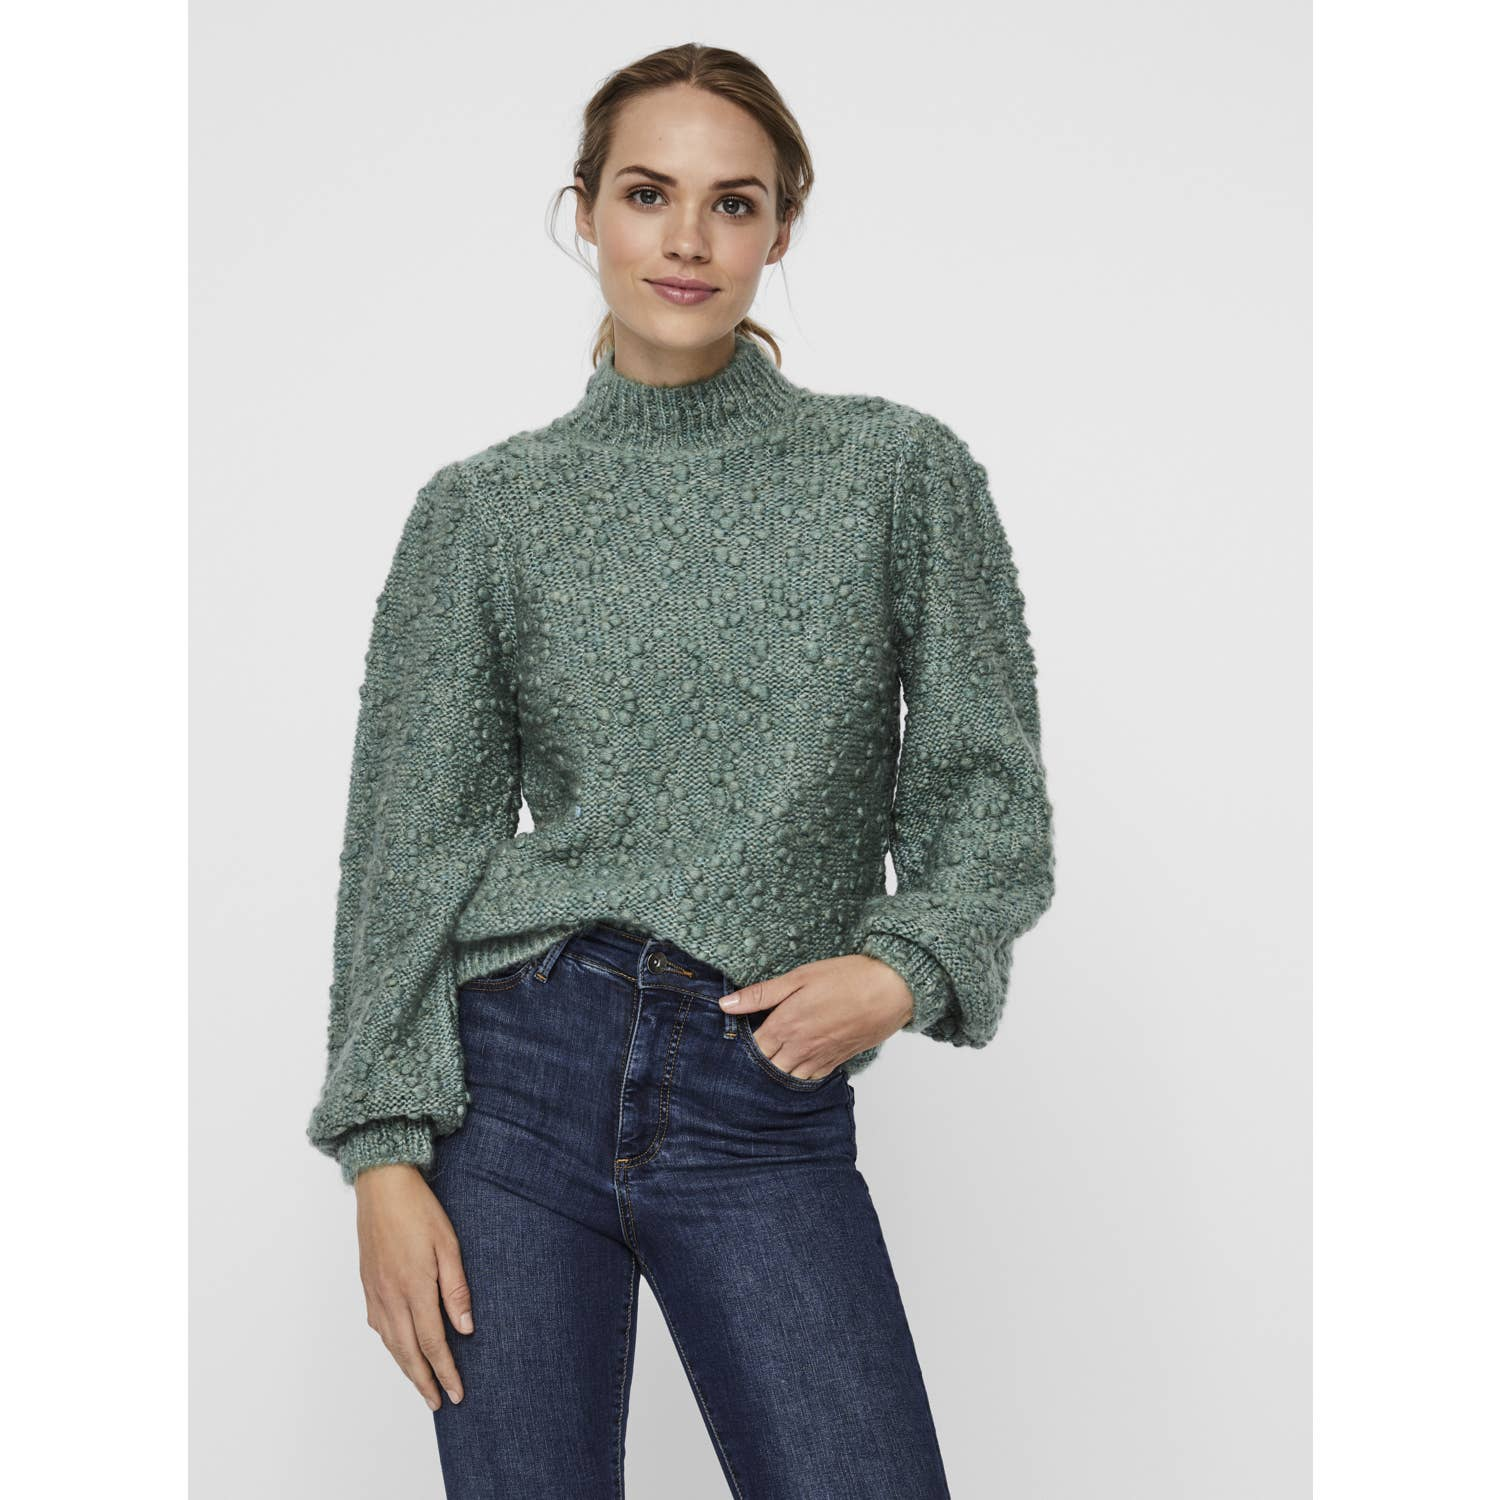 Marta Dot Sweater